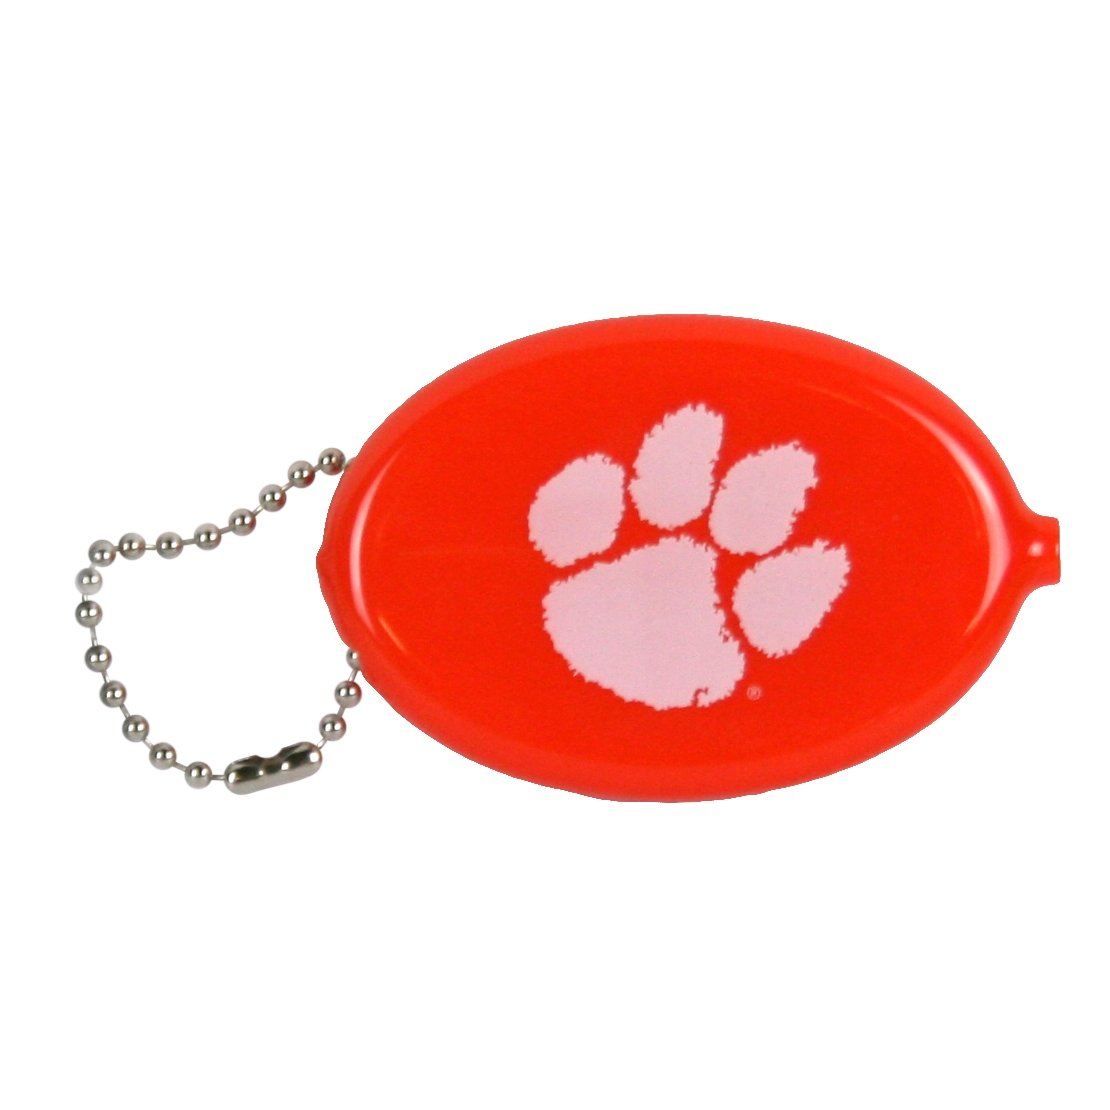 Football Squeeze Purse With White Paw - Mr. Knickerbocker